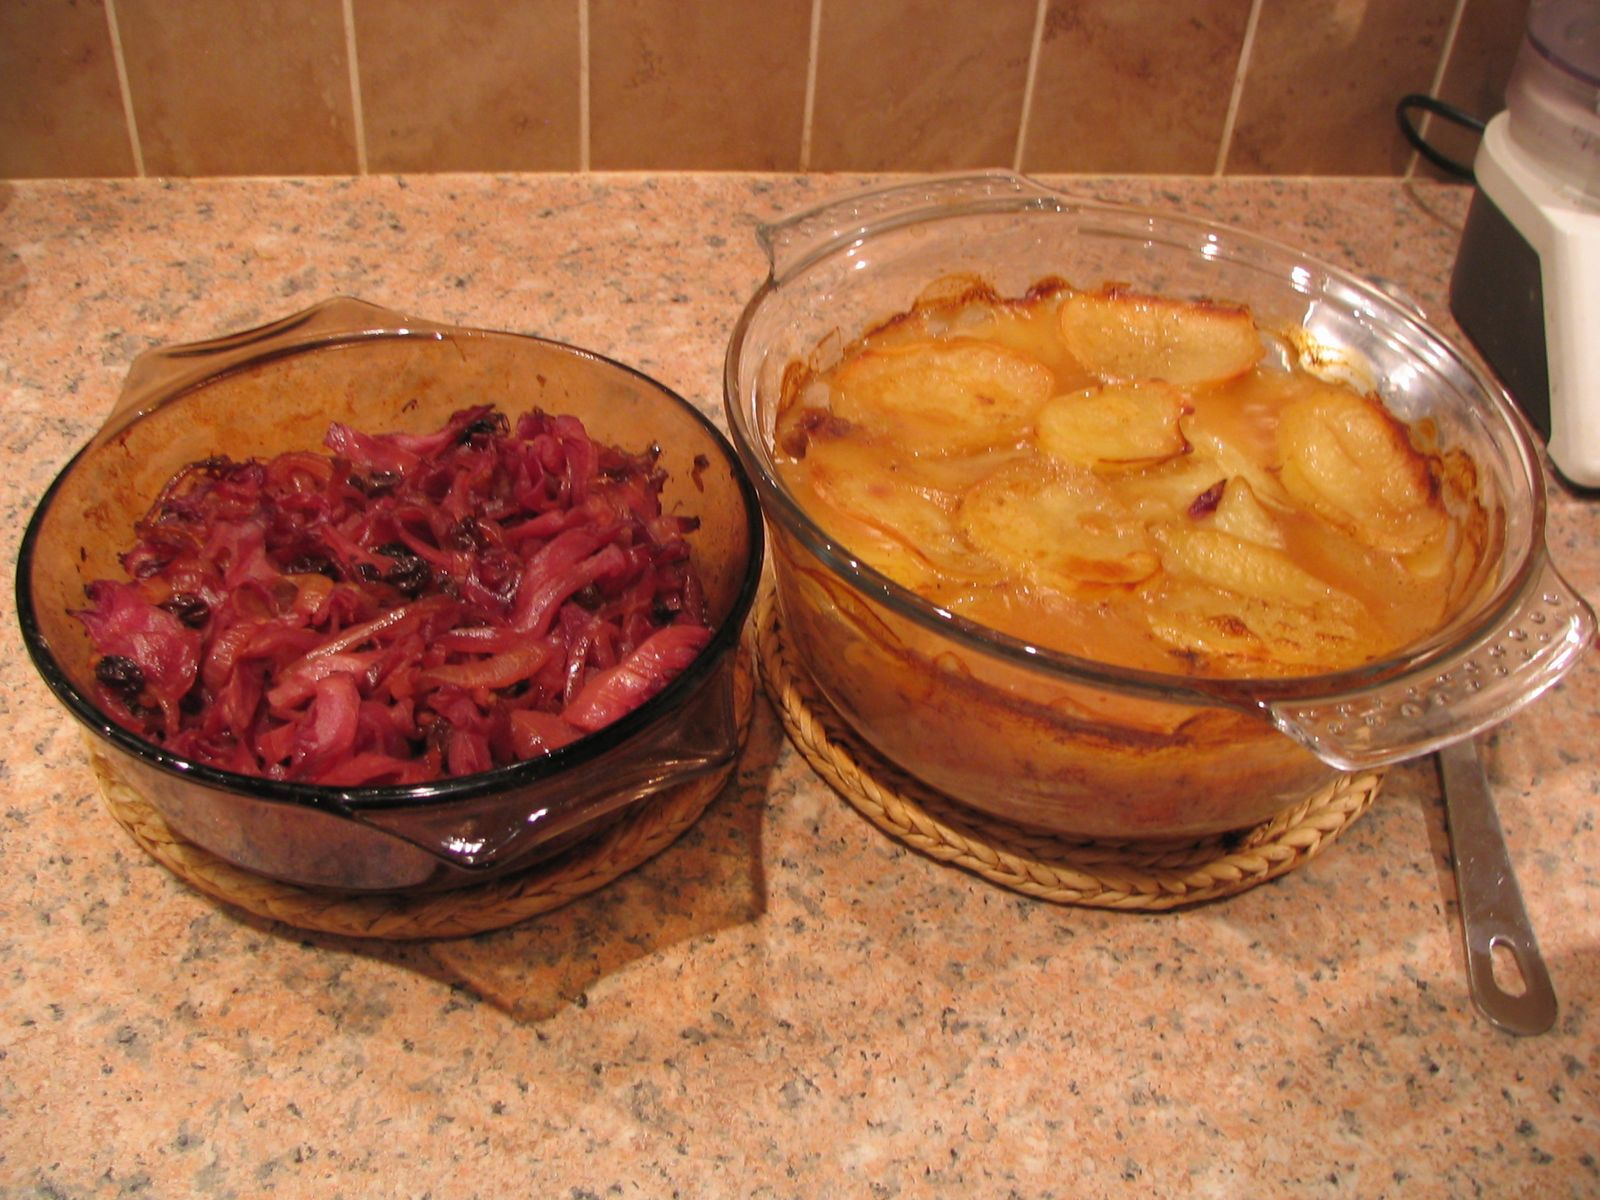 Lancashire hotpot (old picture!)